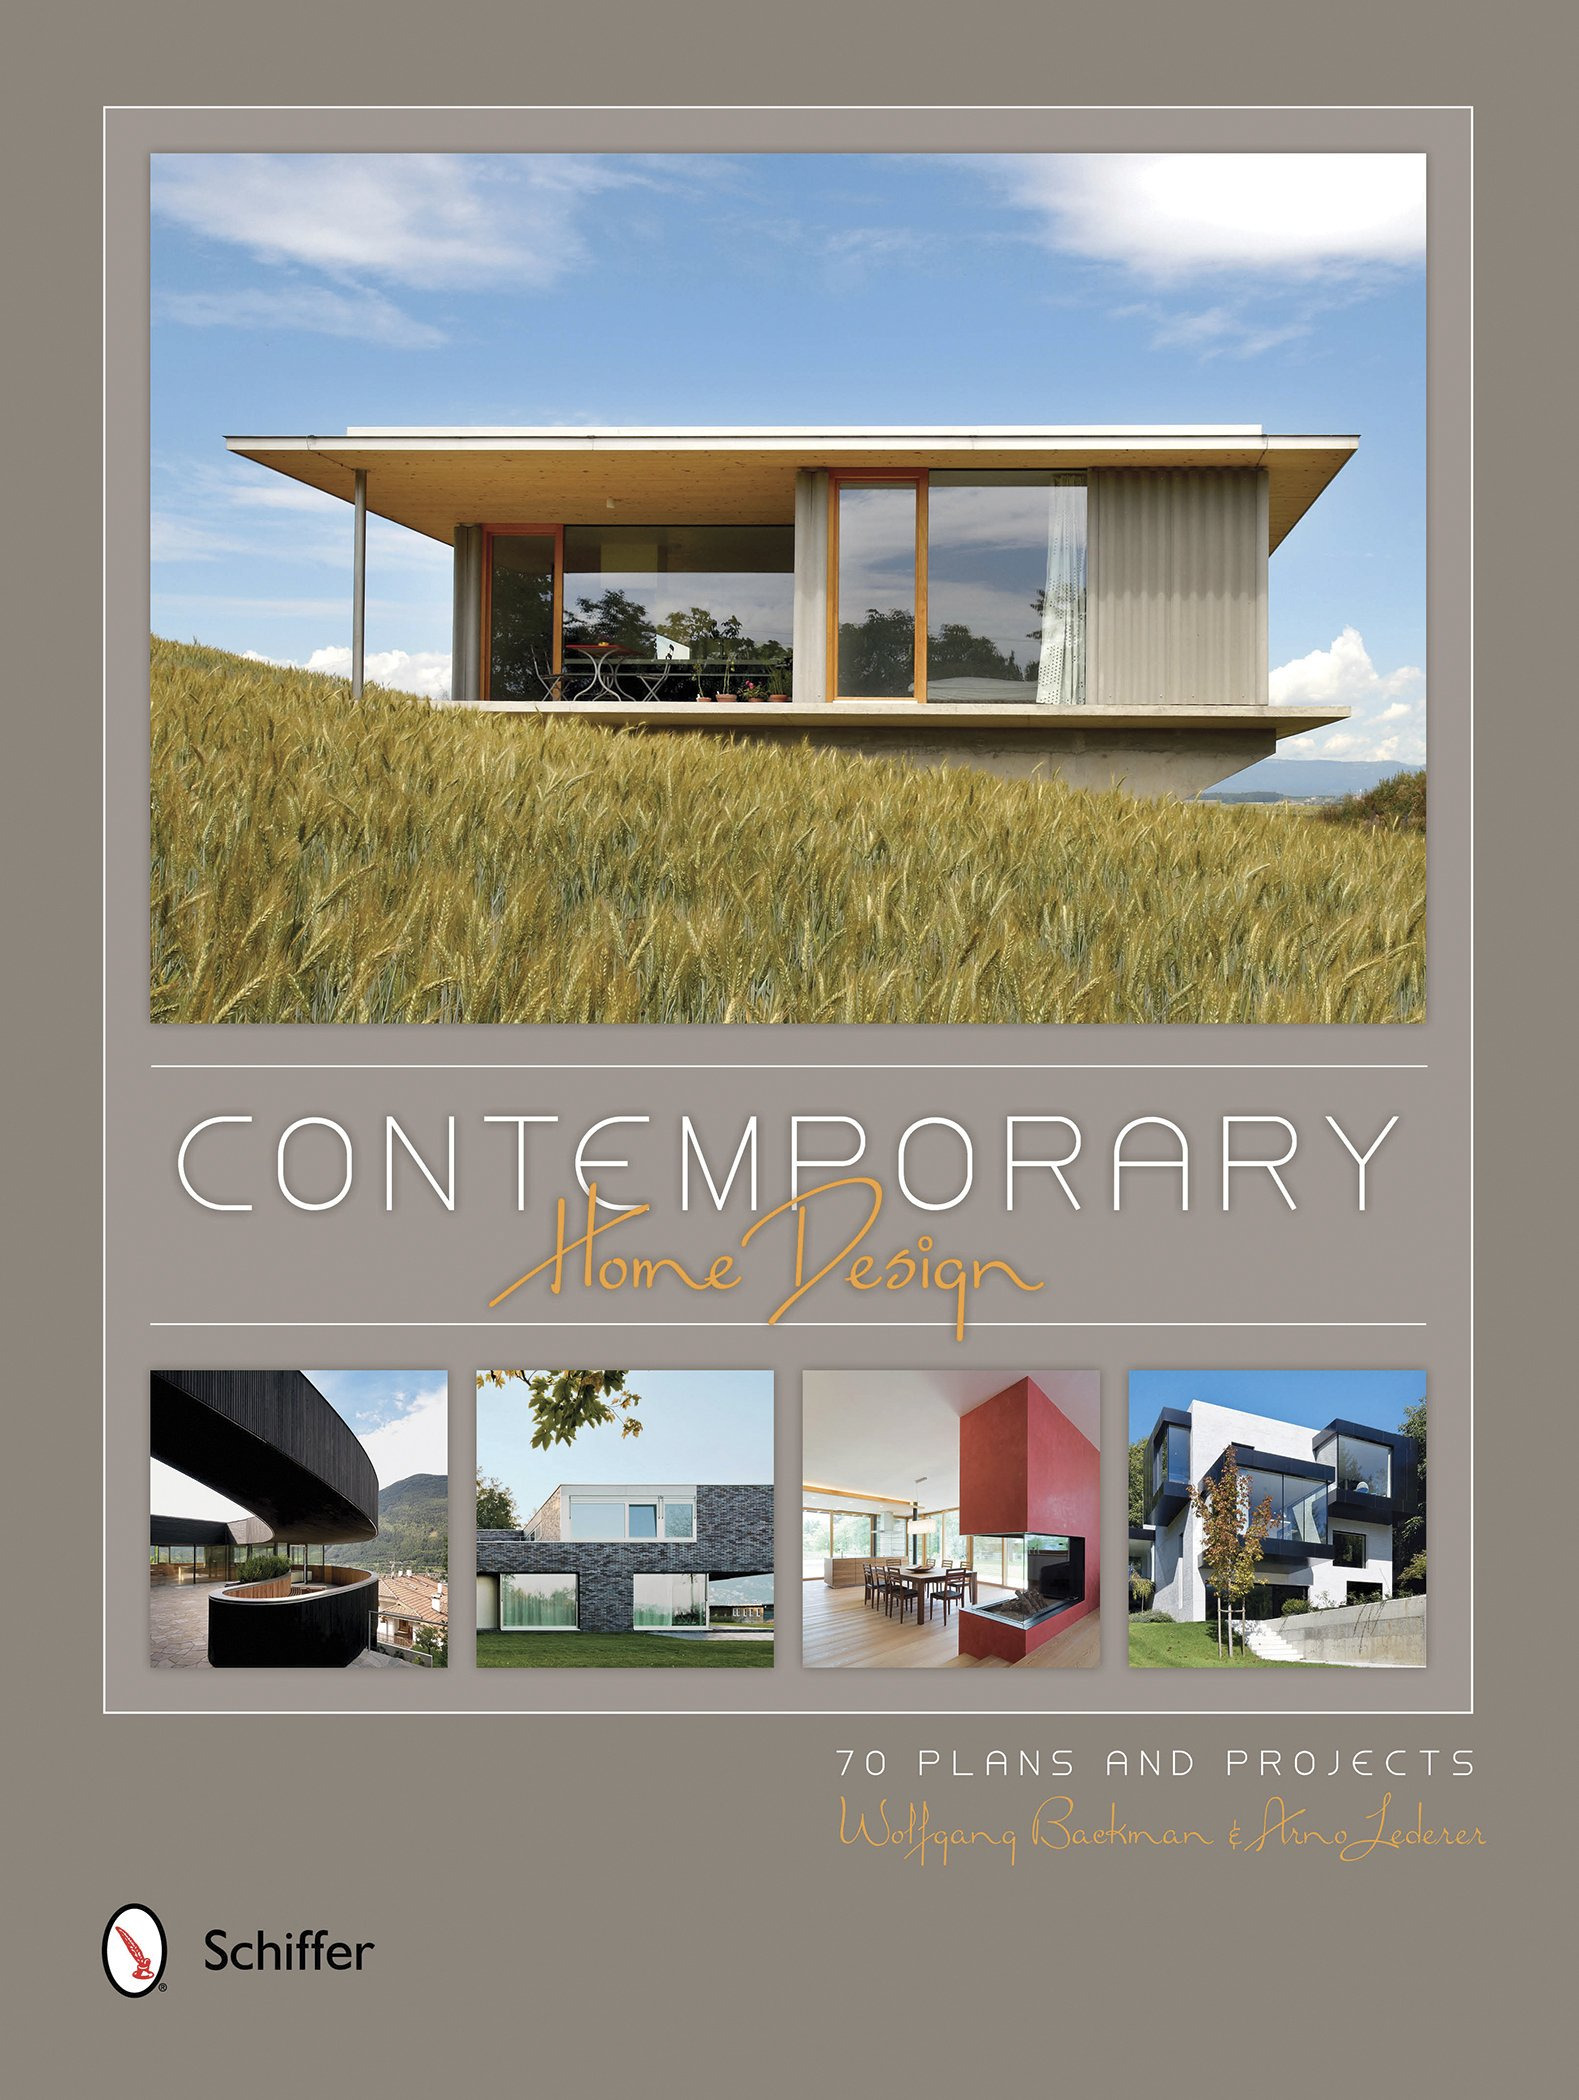 Modern Home Plans Free Luxury Contemporary Home Design 70 Plans and Projects Bachmann